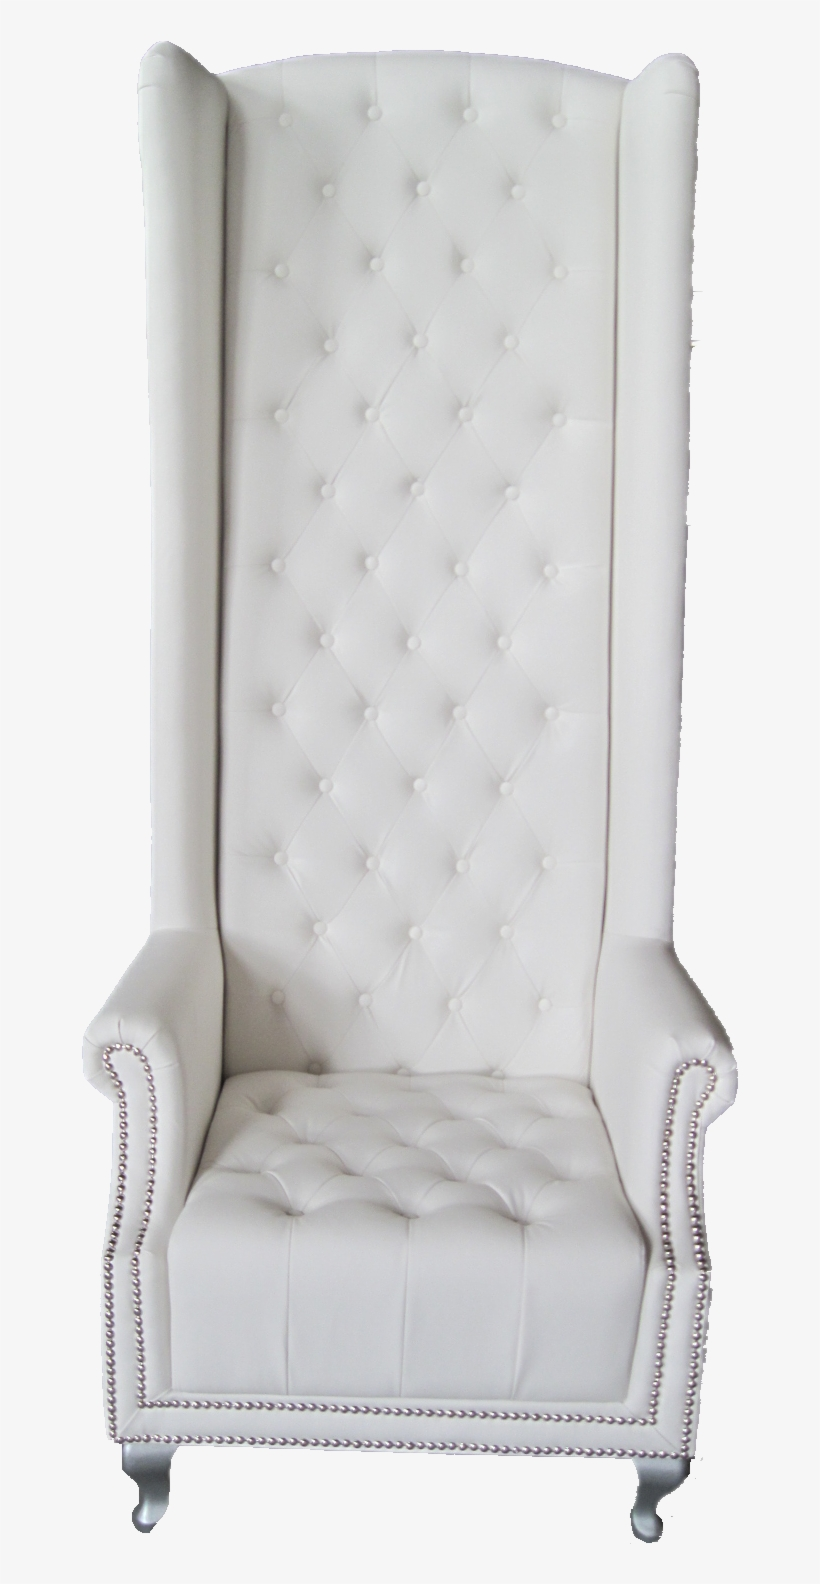 Terrific High Back Chairs Are My Fave More White High Back Accent Bralicious Painted Fabric Chair Ideas Braliciousco